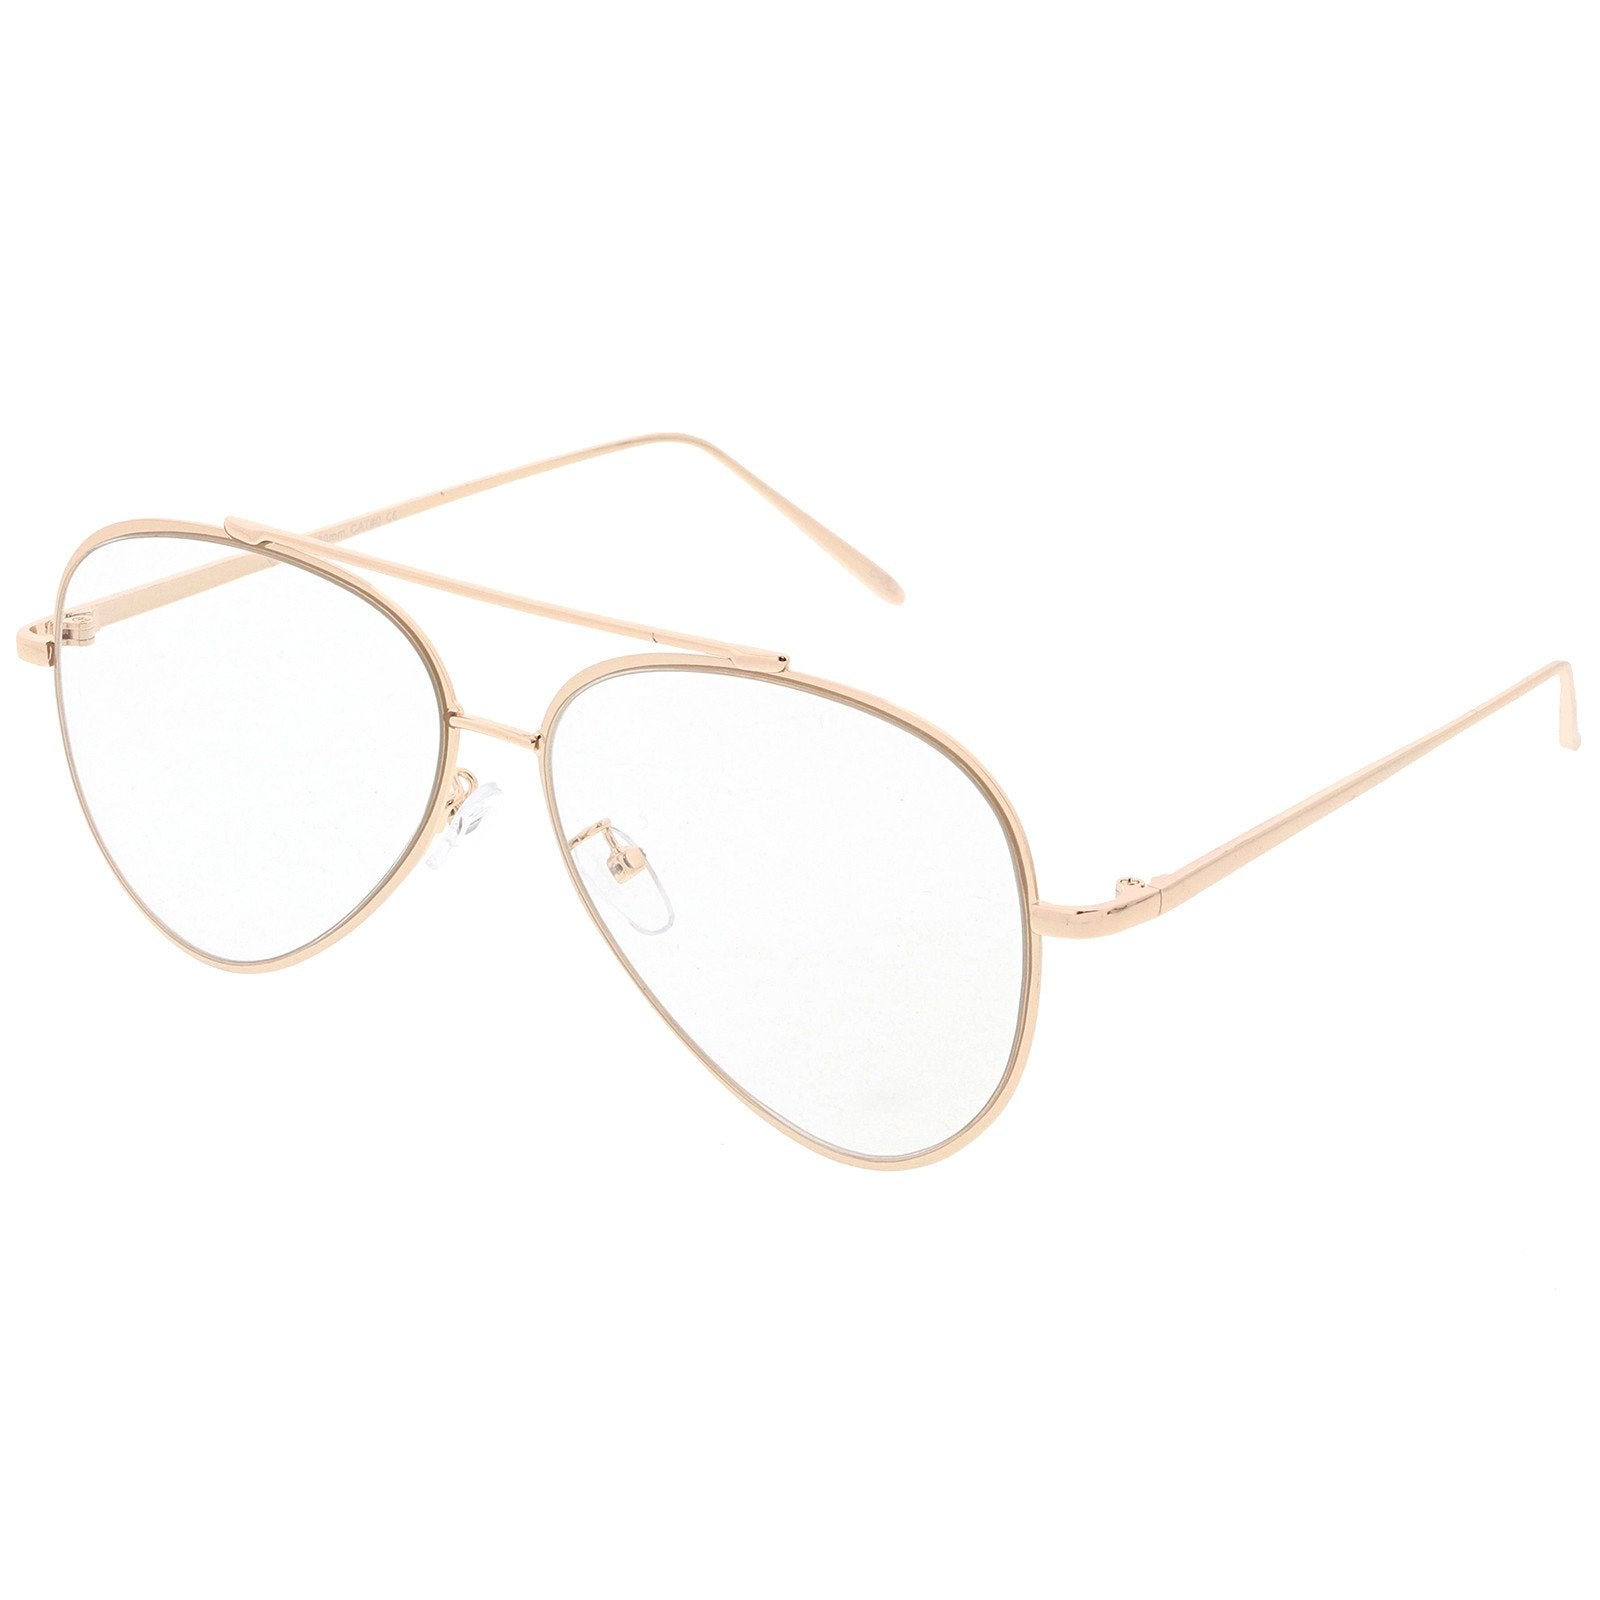 8544904b1ff1 ... Modern Teardrop Clear Flat Lens Glasses 58mm C451 · Gold Clear · Gold  Clear